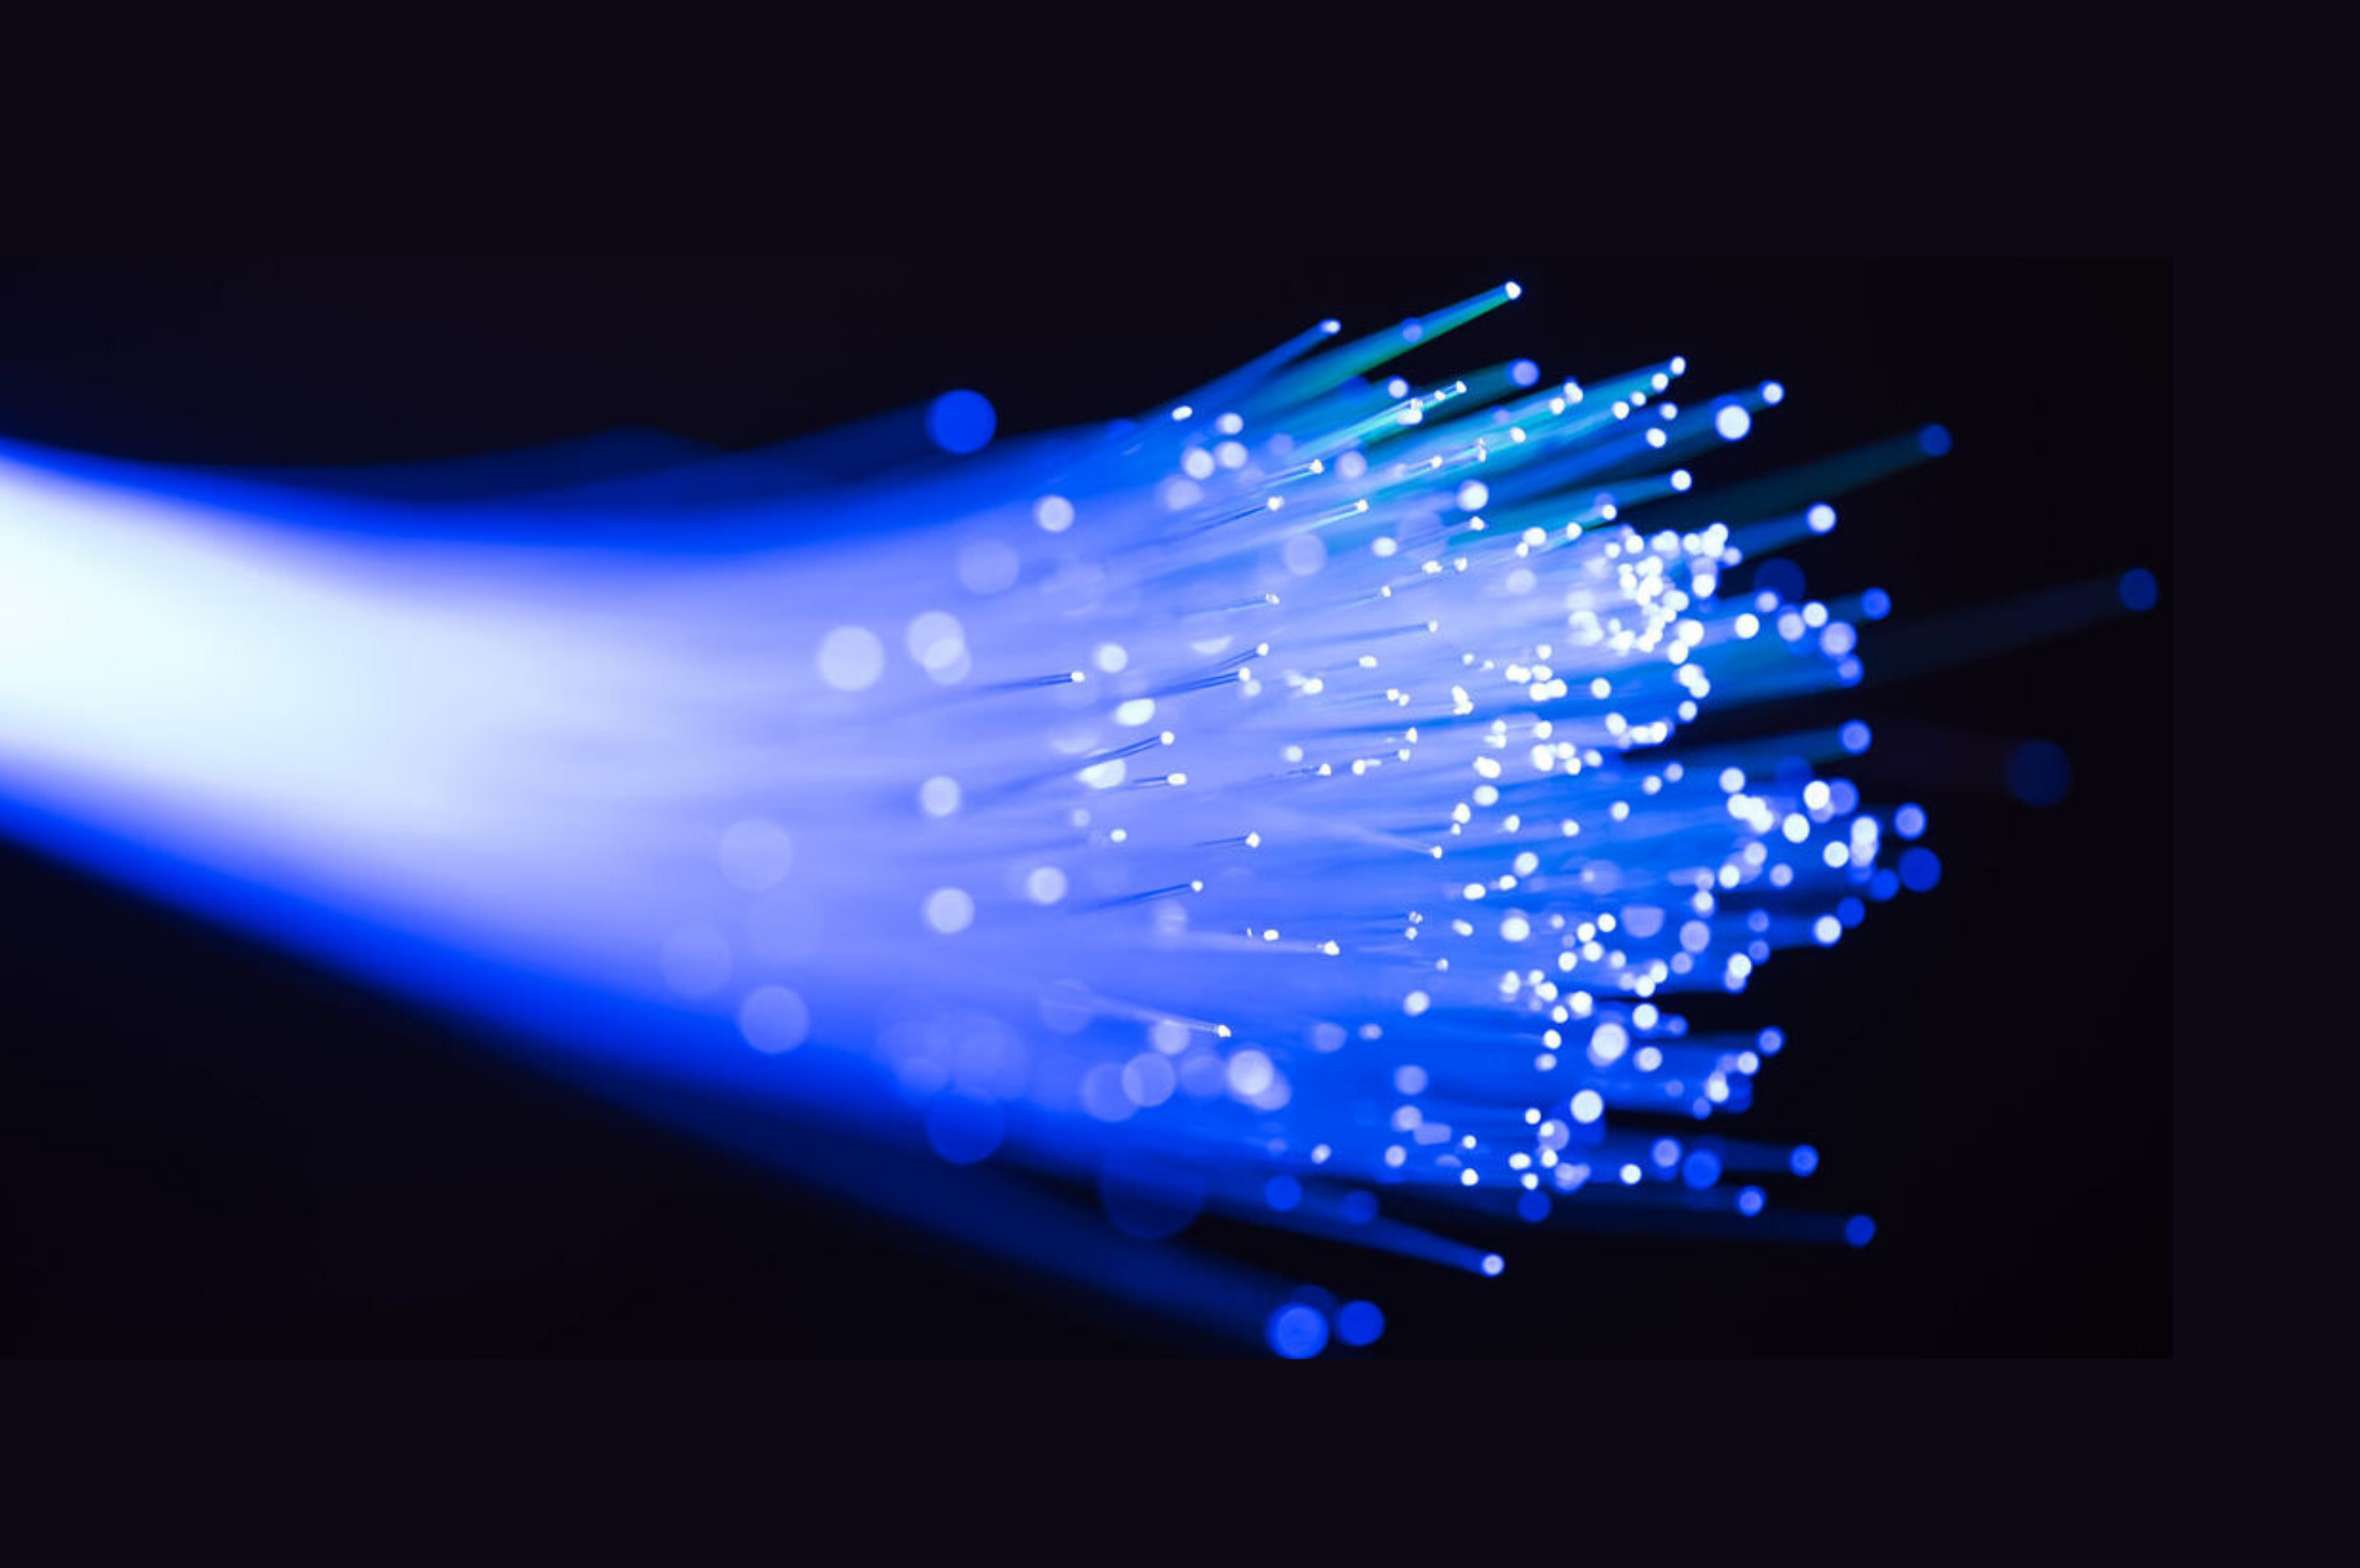 A Picture of Fiber Optic Cables